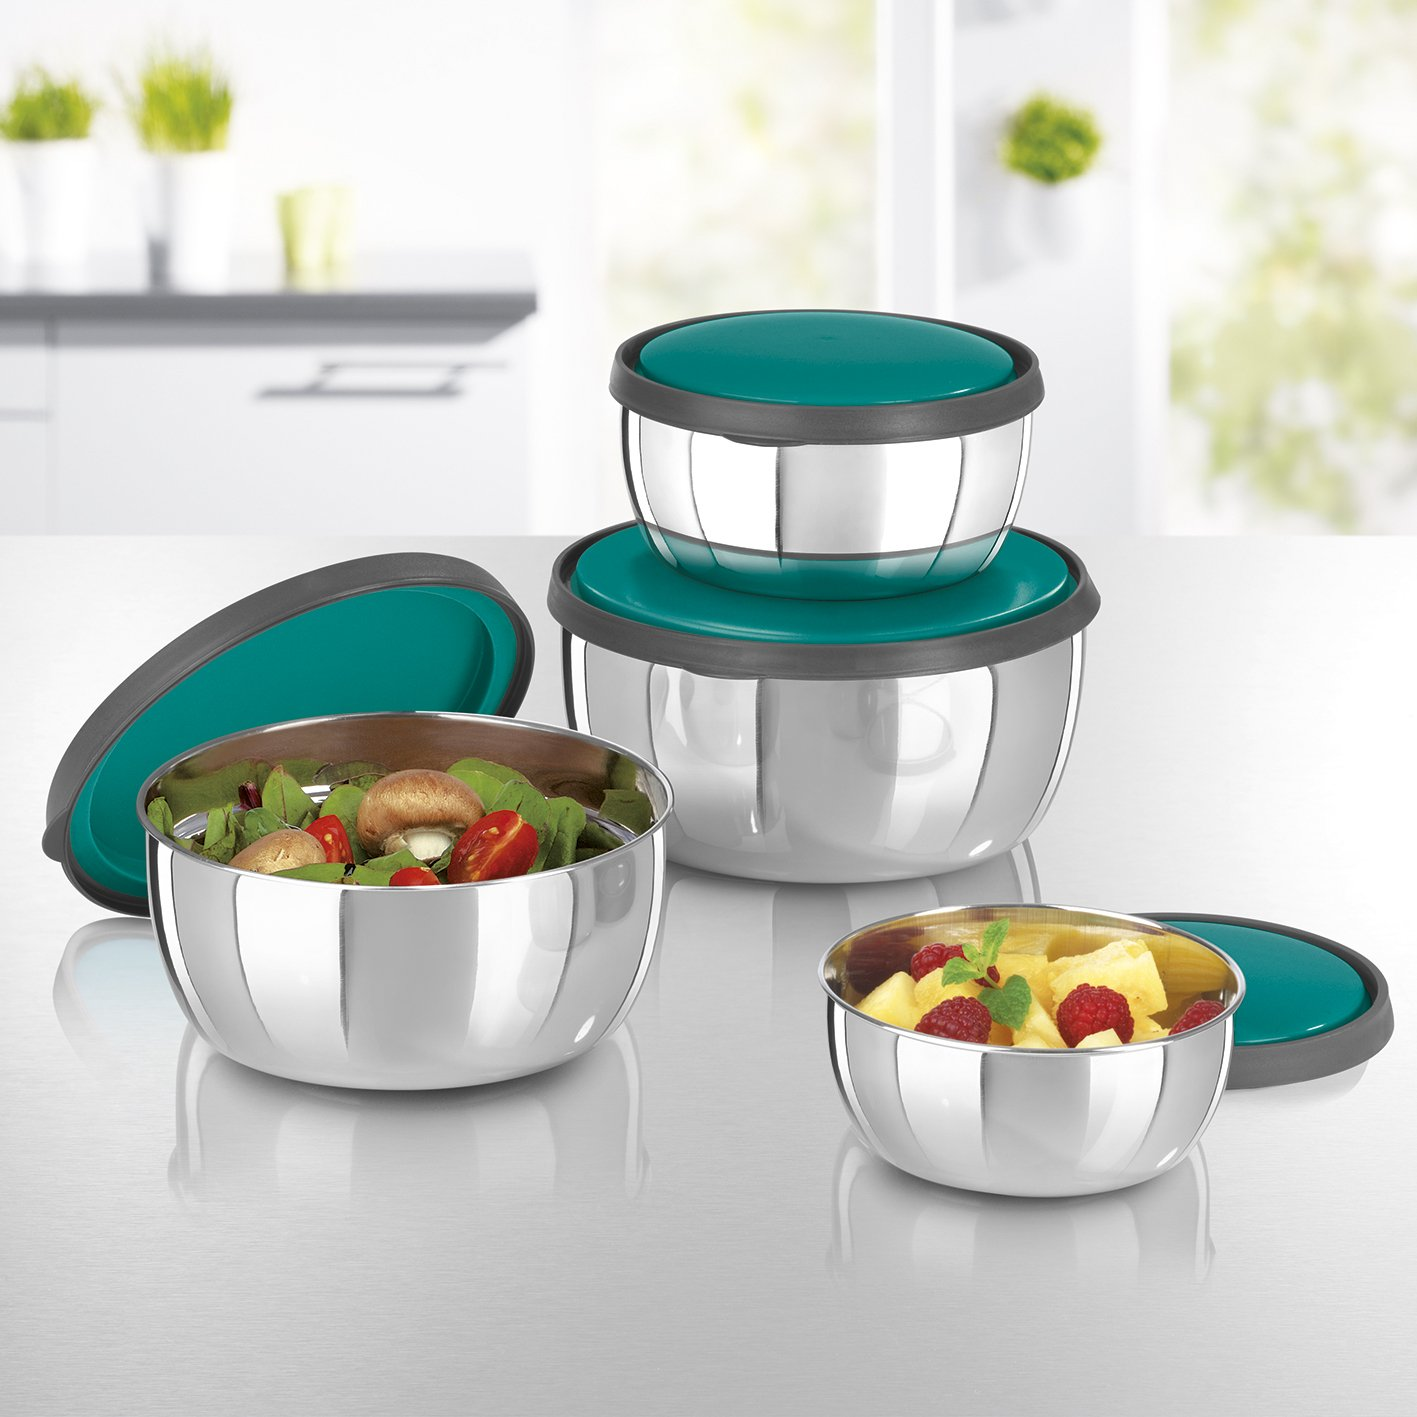 Gourmetmaxx 01807 Stainless Steel Food Storage Container Set, 8 Pieces -